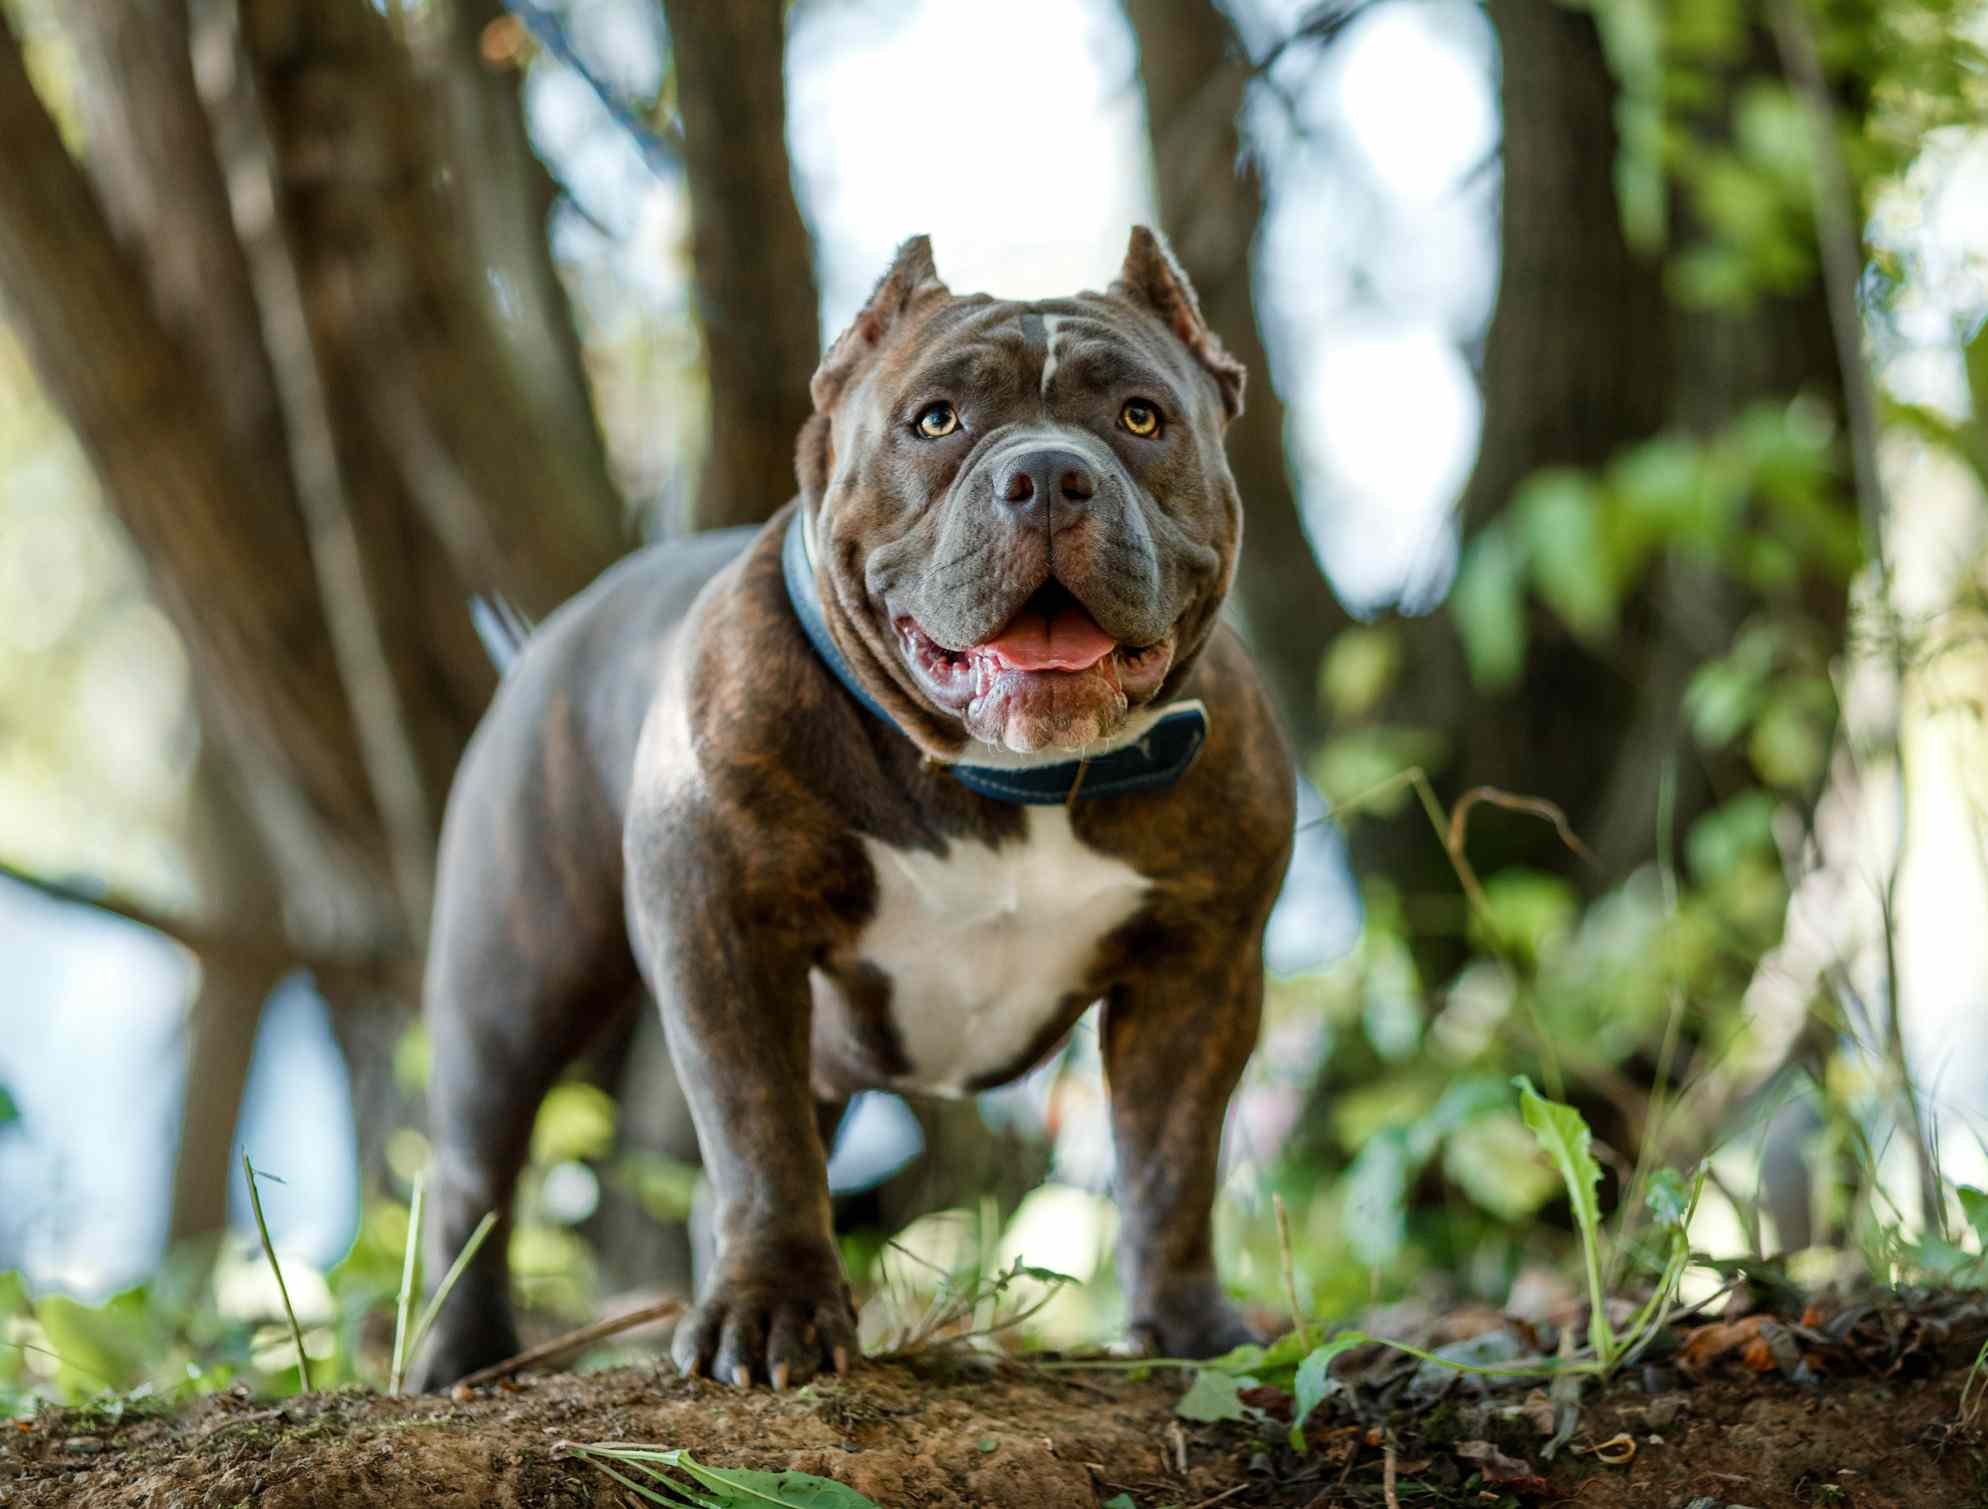 American bully standing in a forest